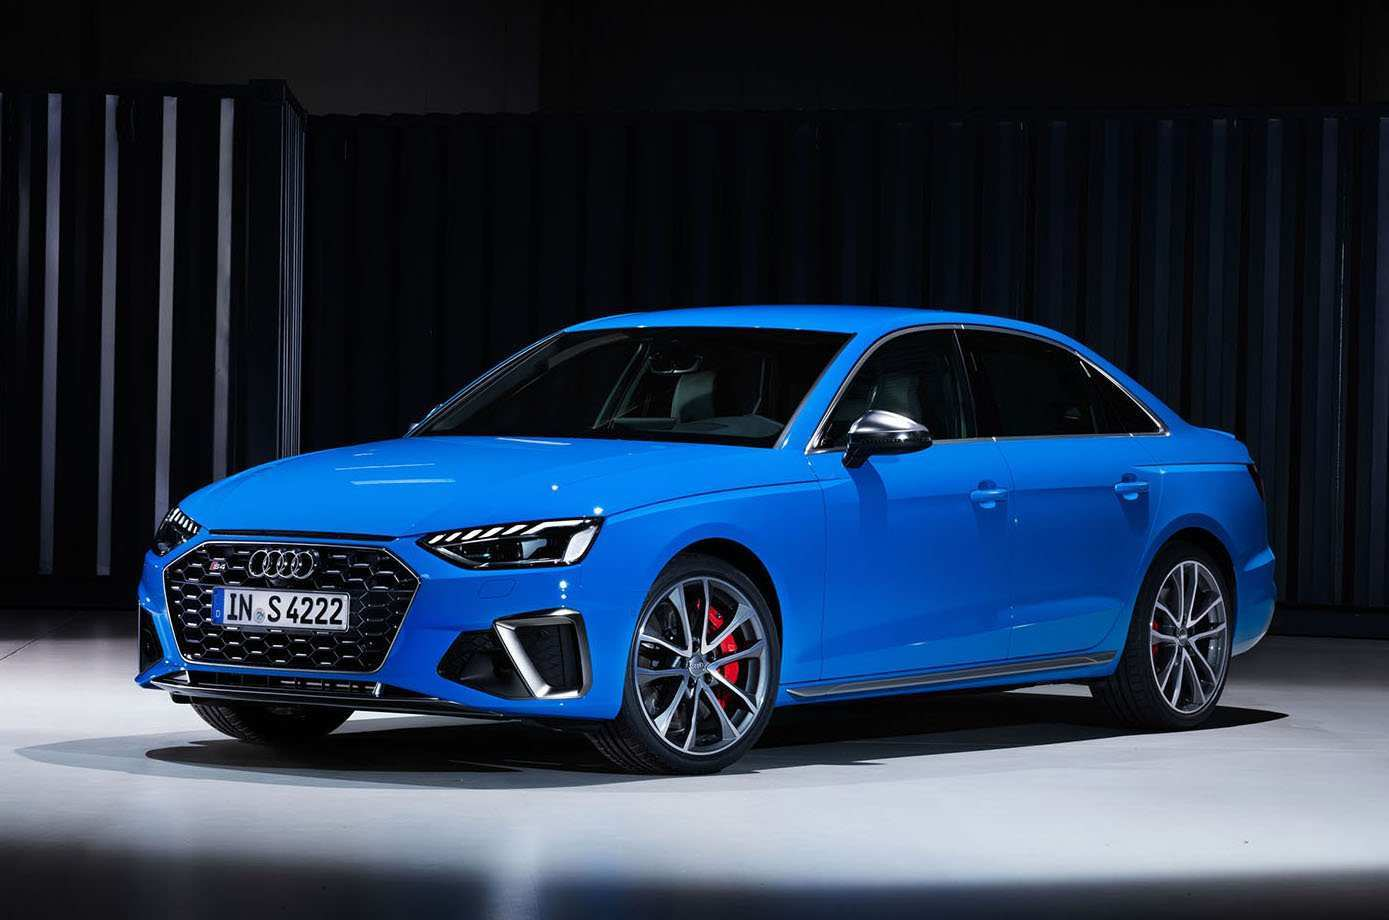 32 Great Audi Hybrid Cars 2020 Reviews for Audi Hybrid Cars 2020